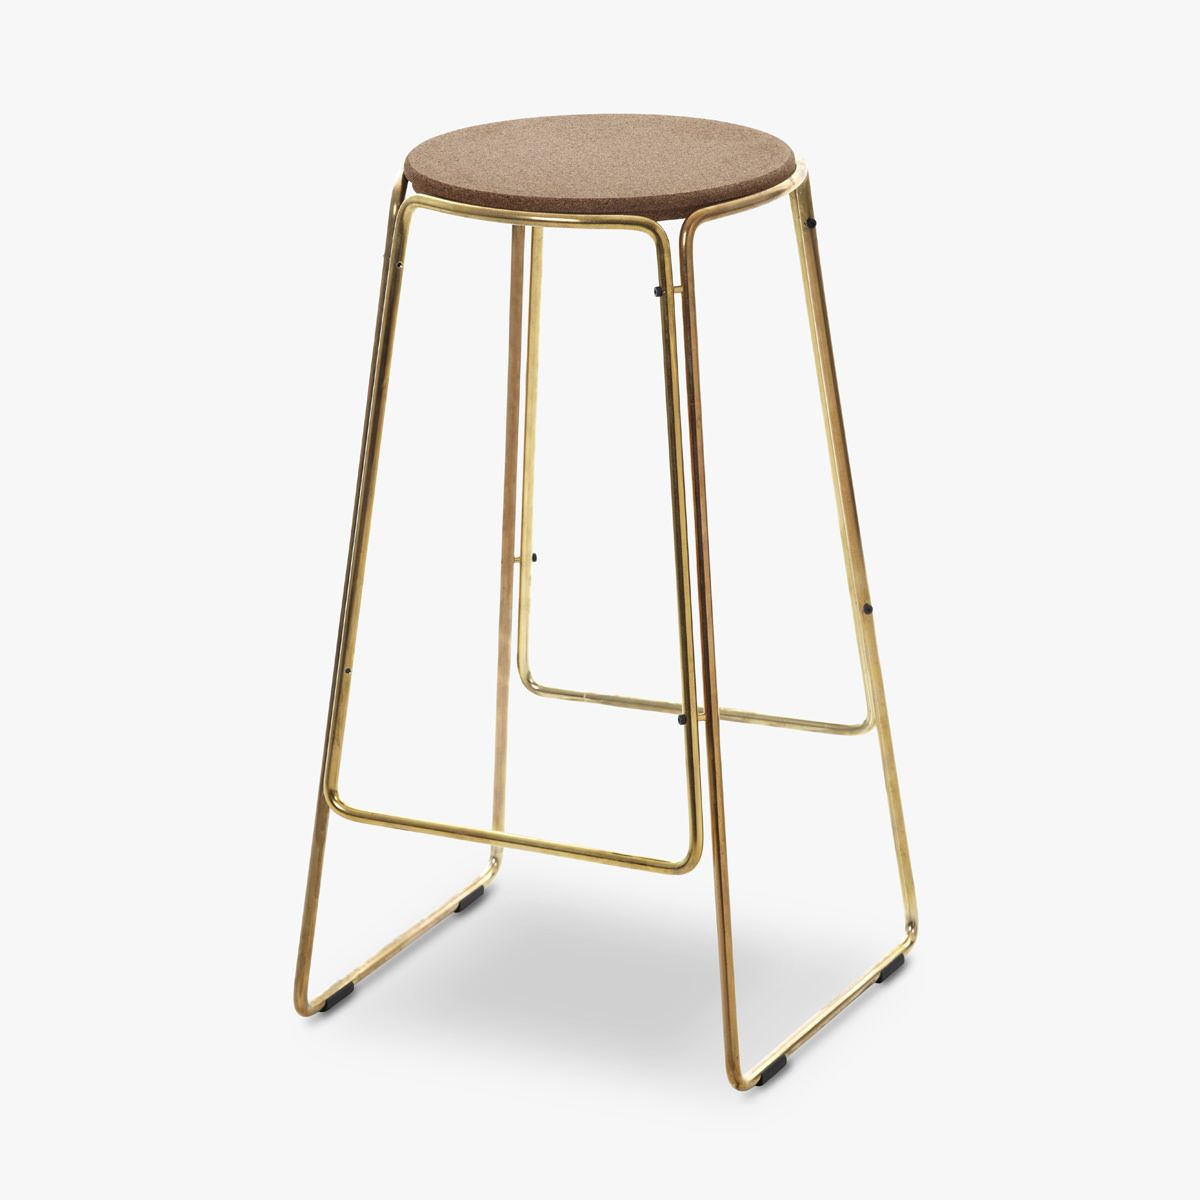 The smed stool is a classic collaboration between great for Dane design furniture